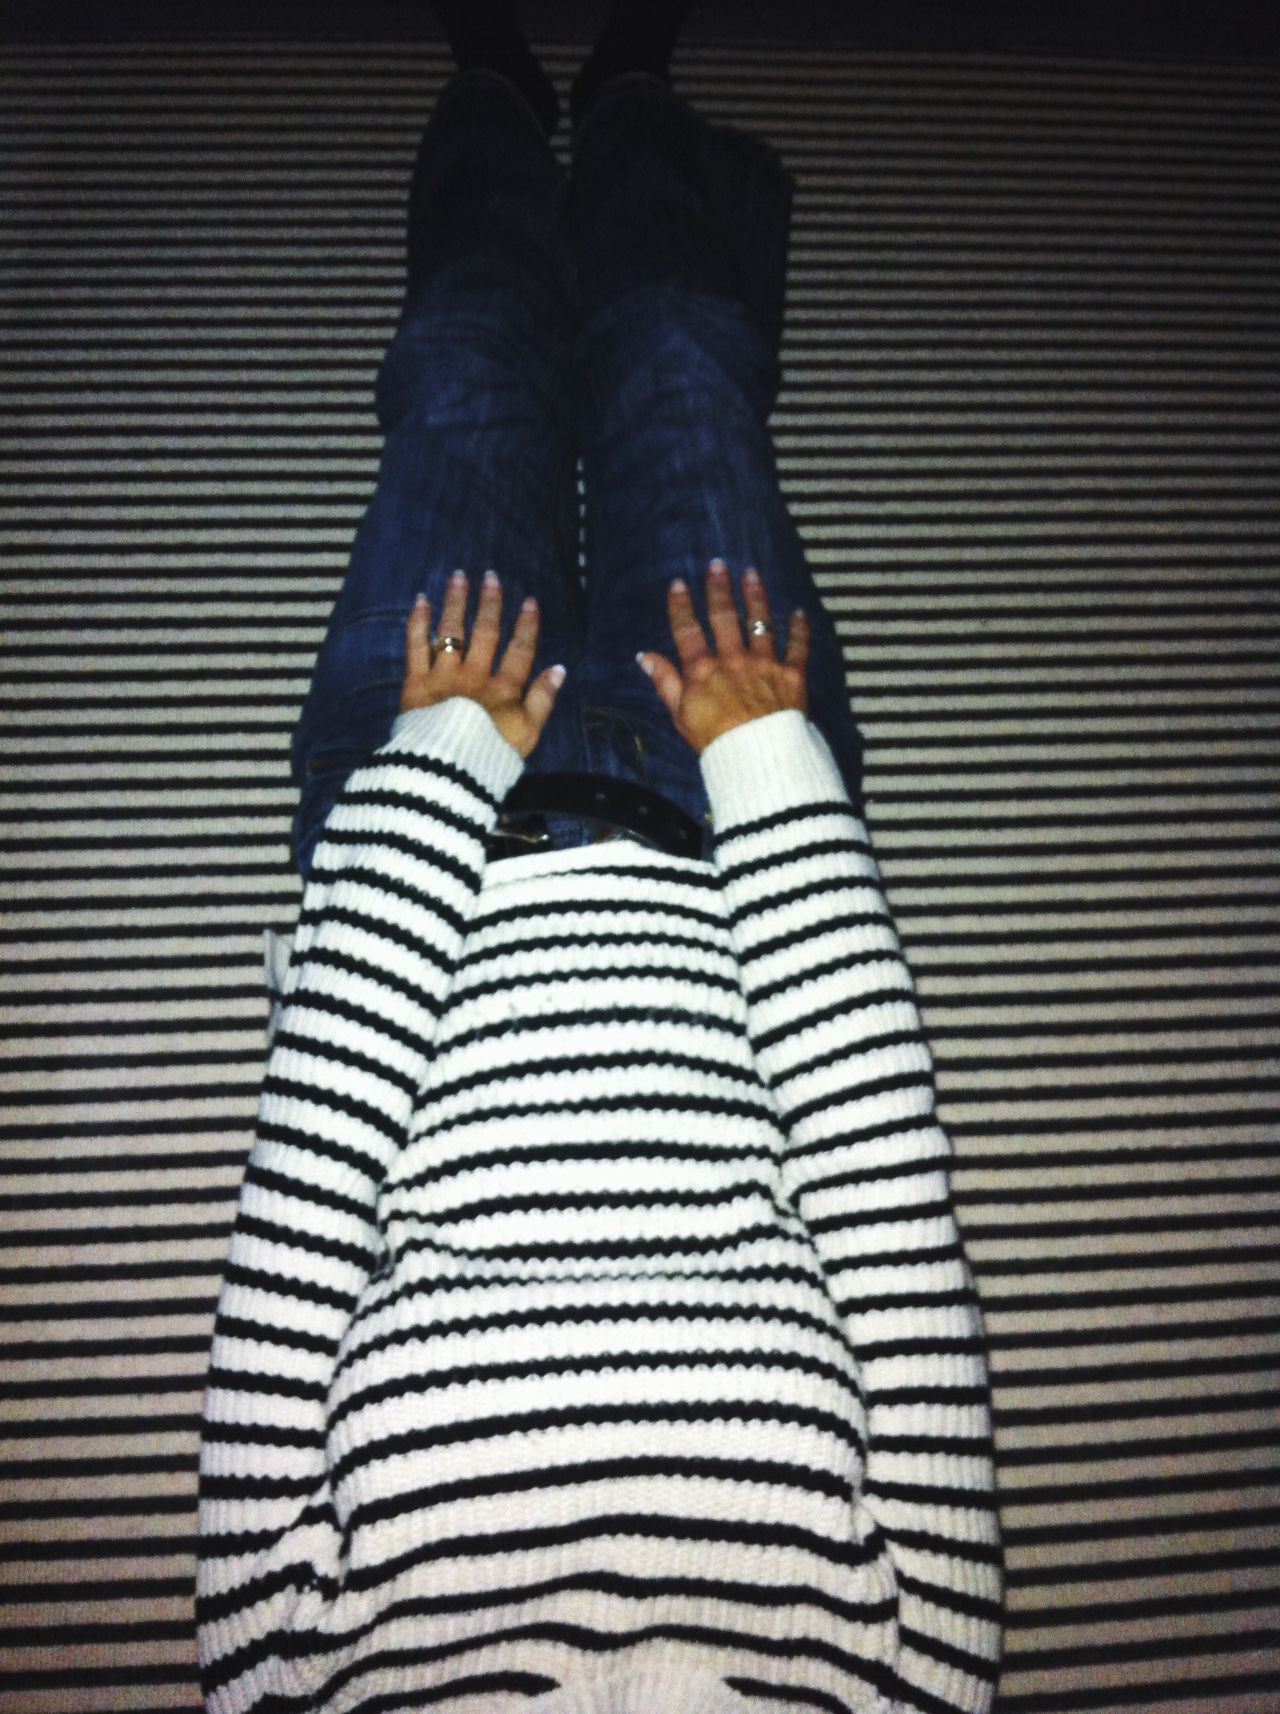 Perfect Match Stripes Everywhere BlackAndWhiteStripes Camaflage Striped Carpet Hide And Seek